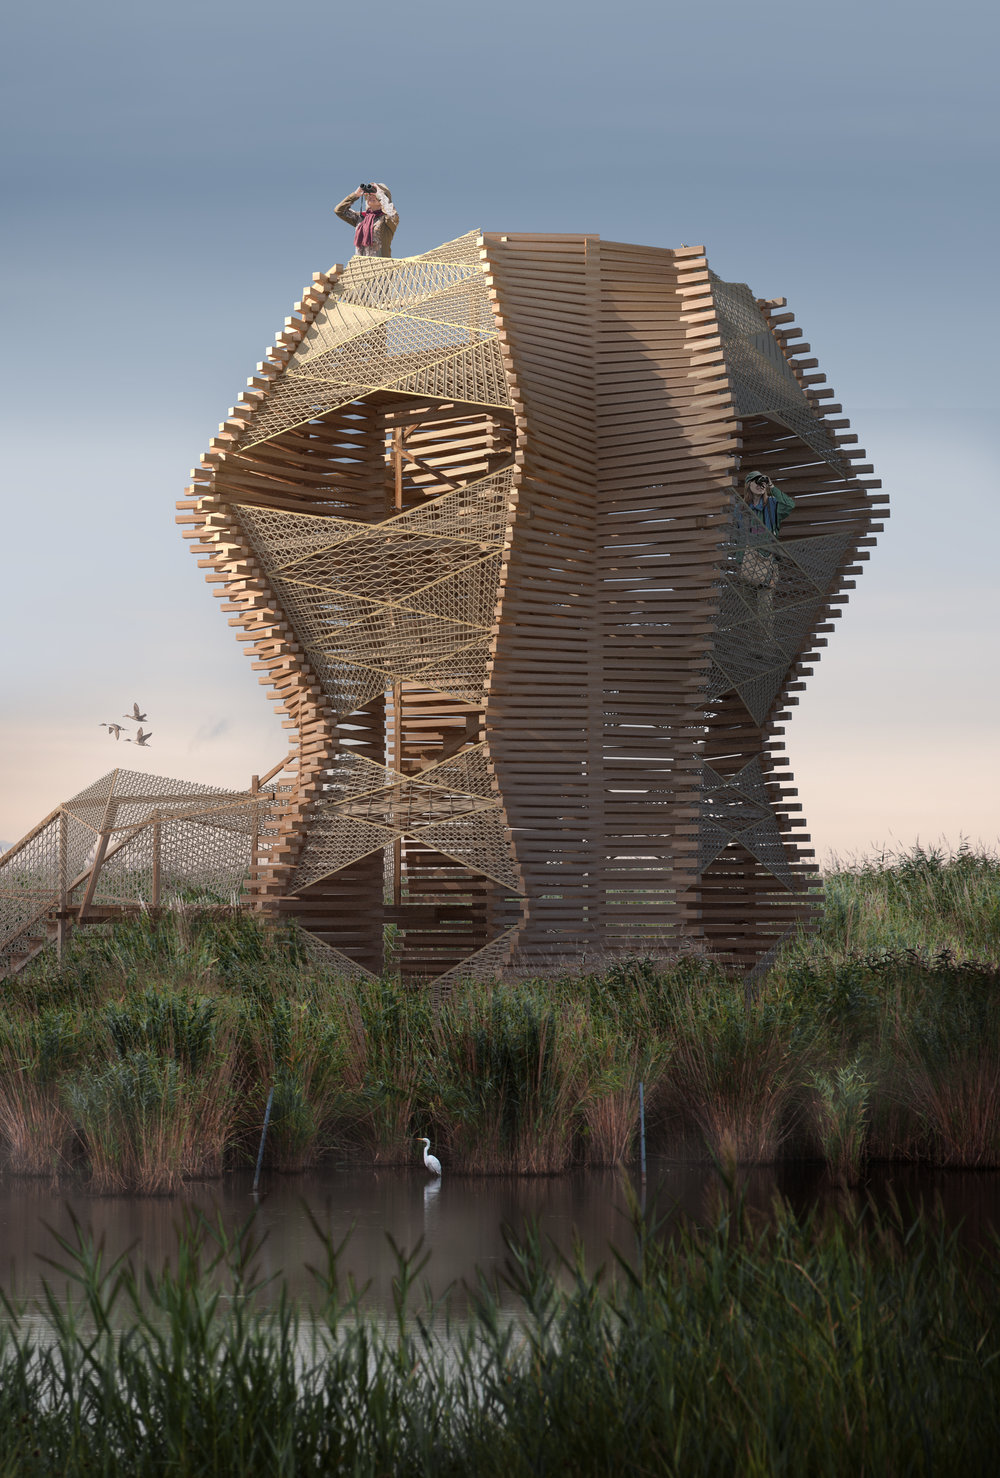 The shape and the name of the tower is inspired by the symbol of Auseklis, a Latvian folklore deity also known as the morning star, symbol of light and hope.